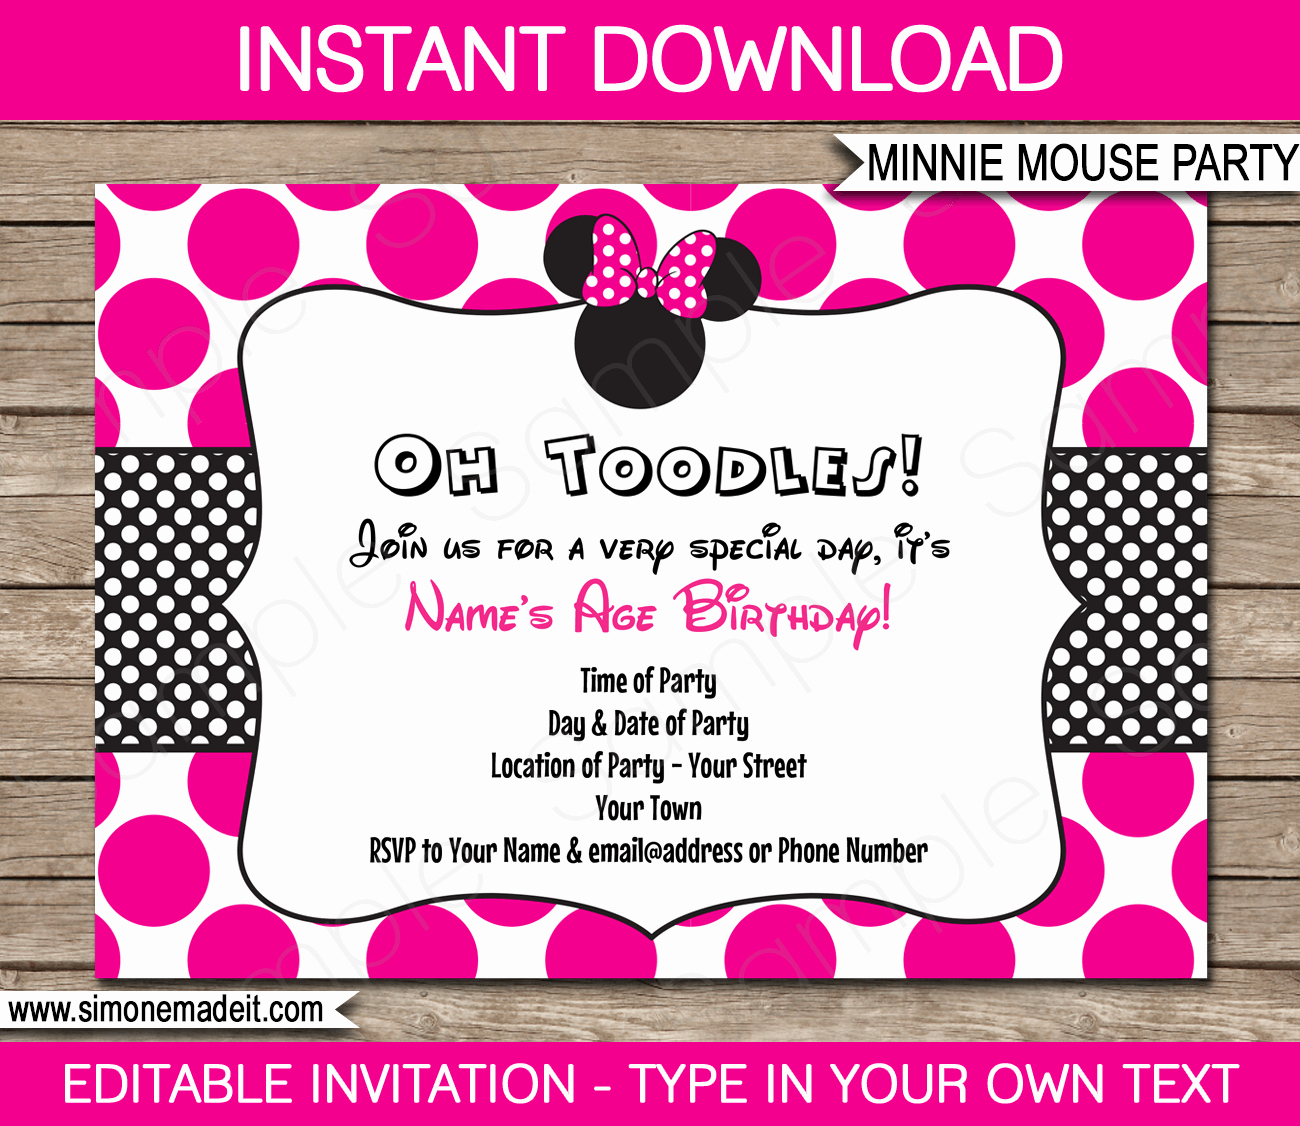 Pink Minnie Mouse Invitations Lovely Minnie Mouse Party Printables Invitations & Decorations